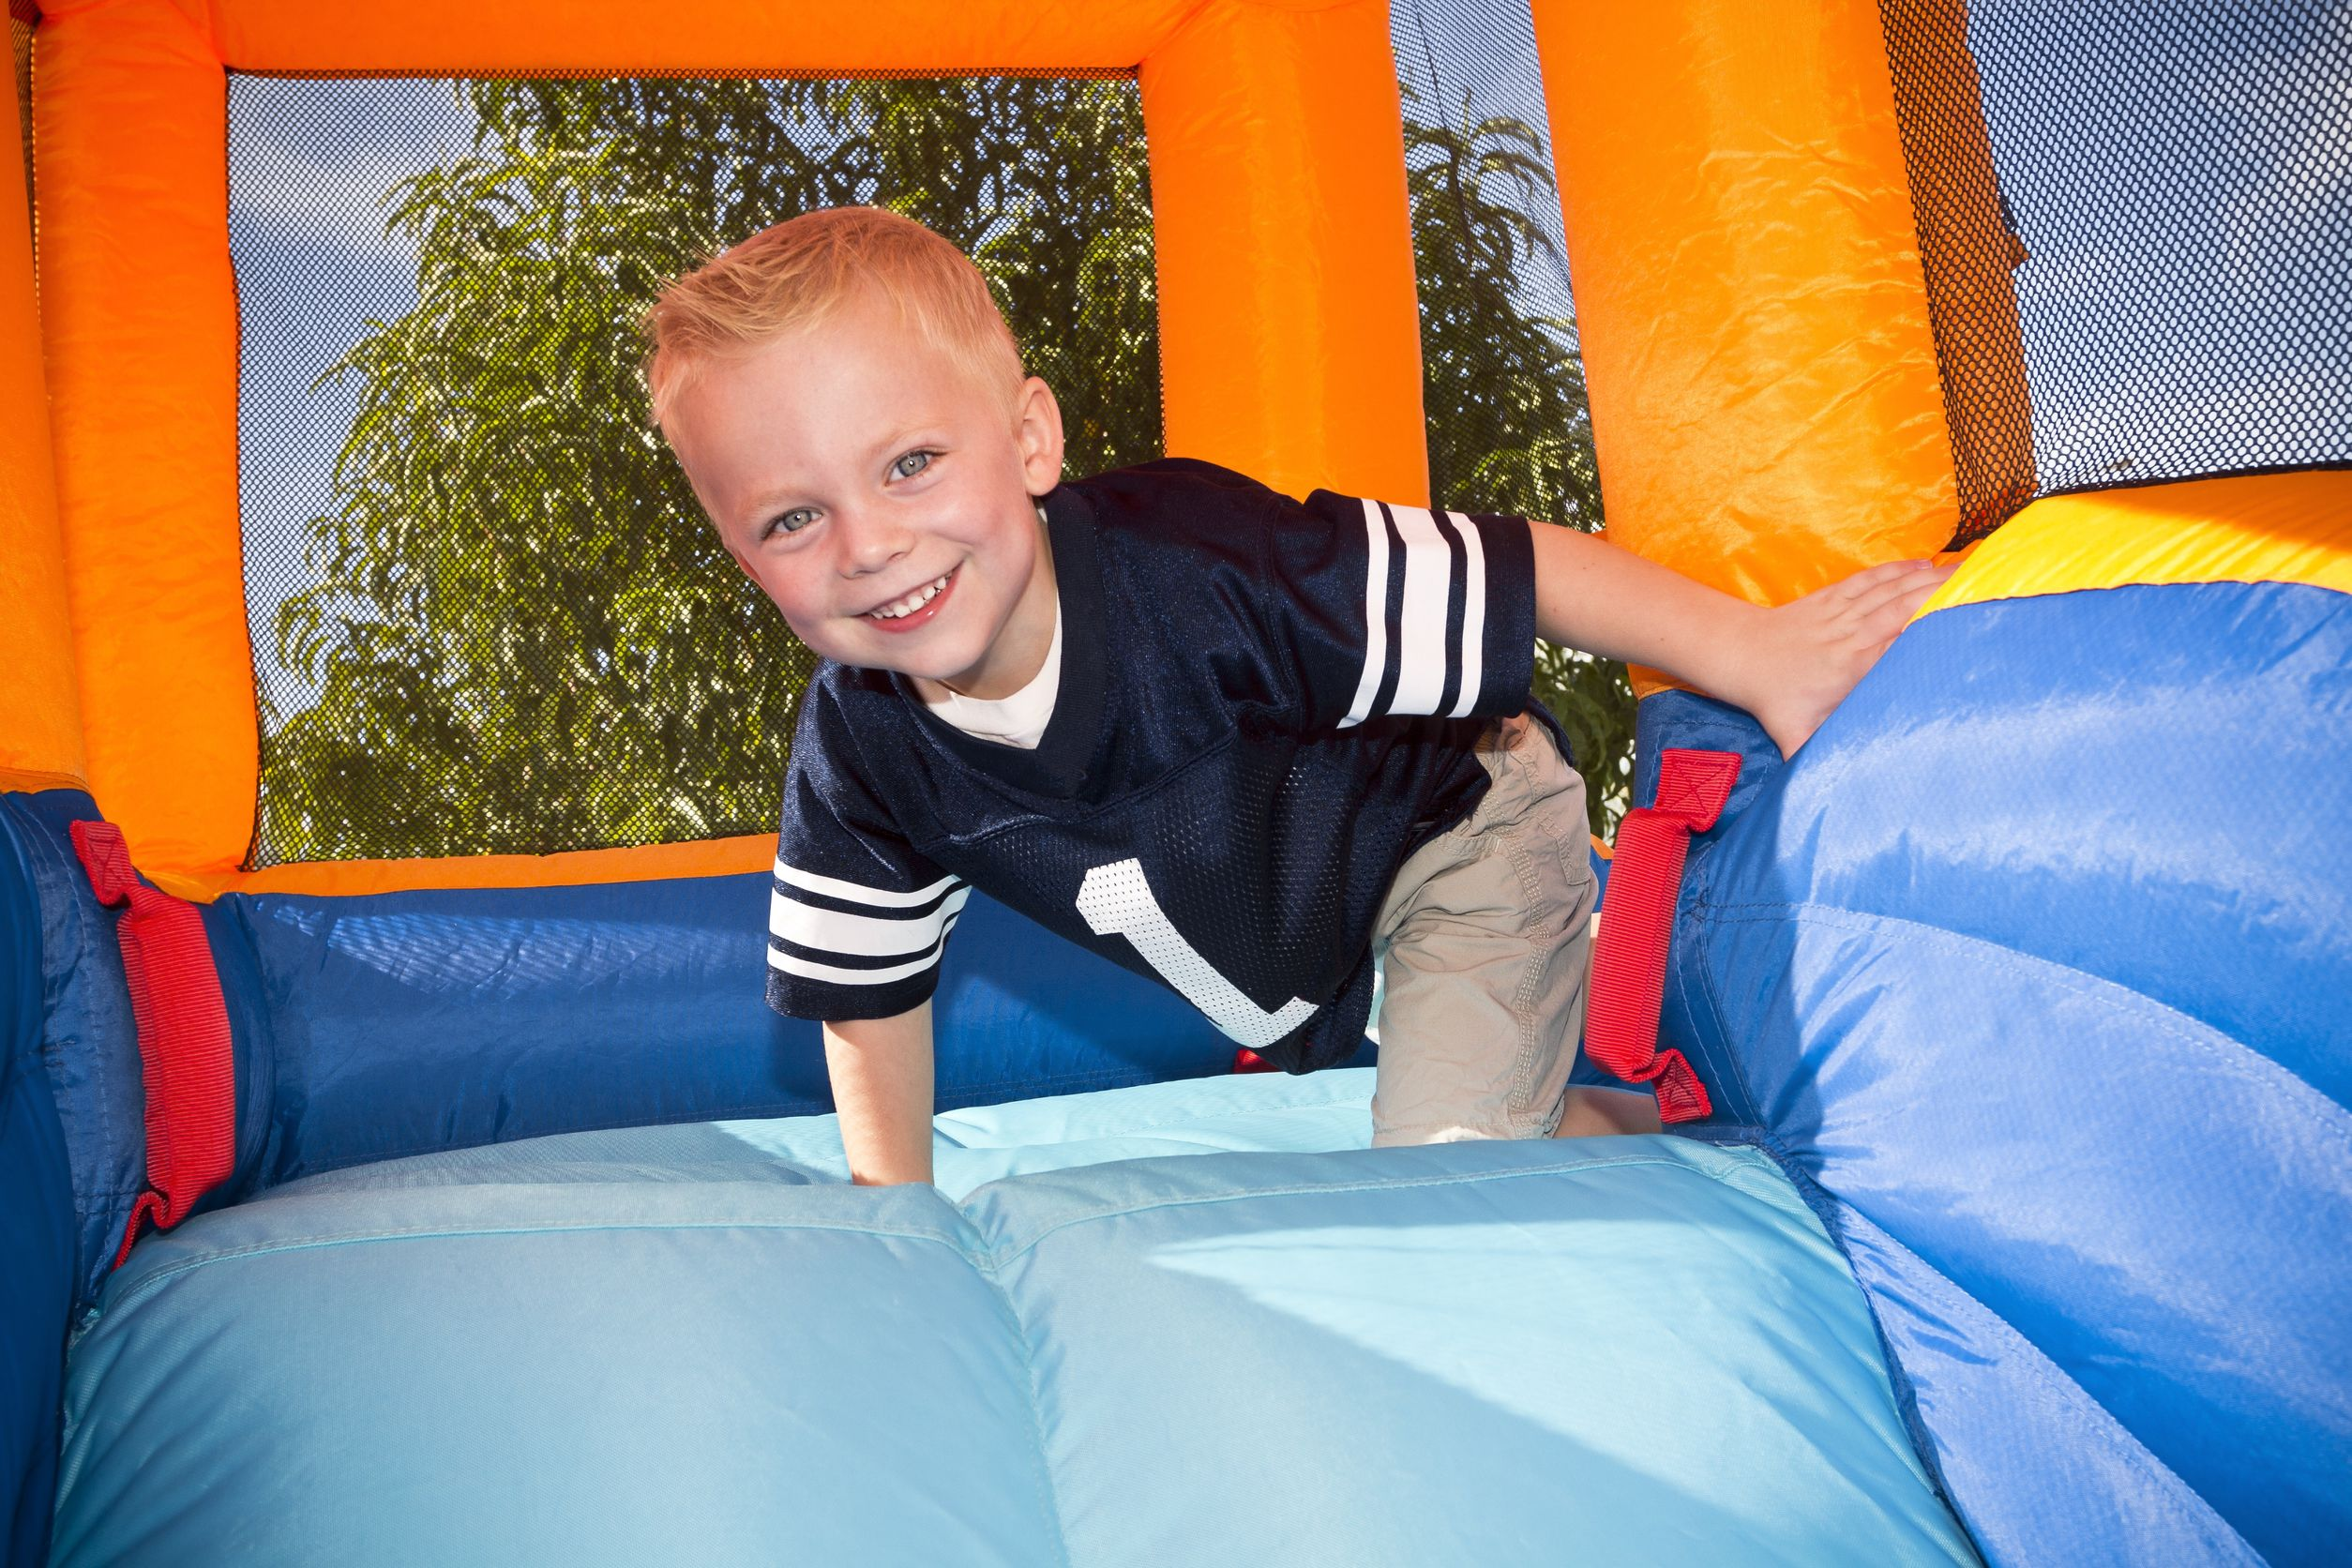 Little kid playing in an inflatable